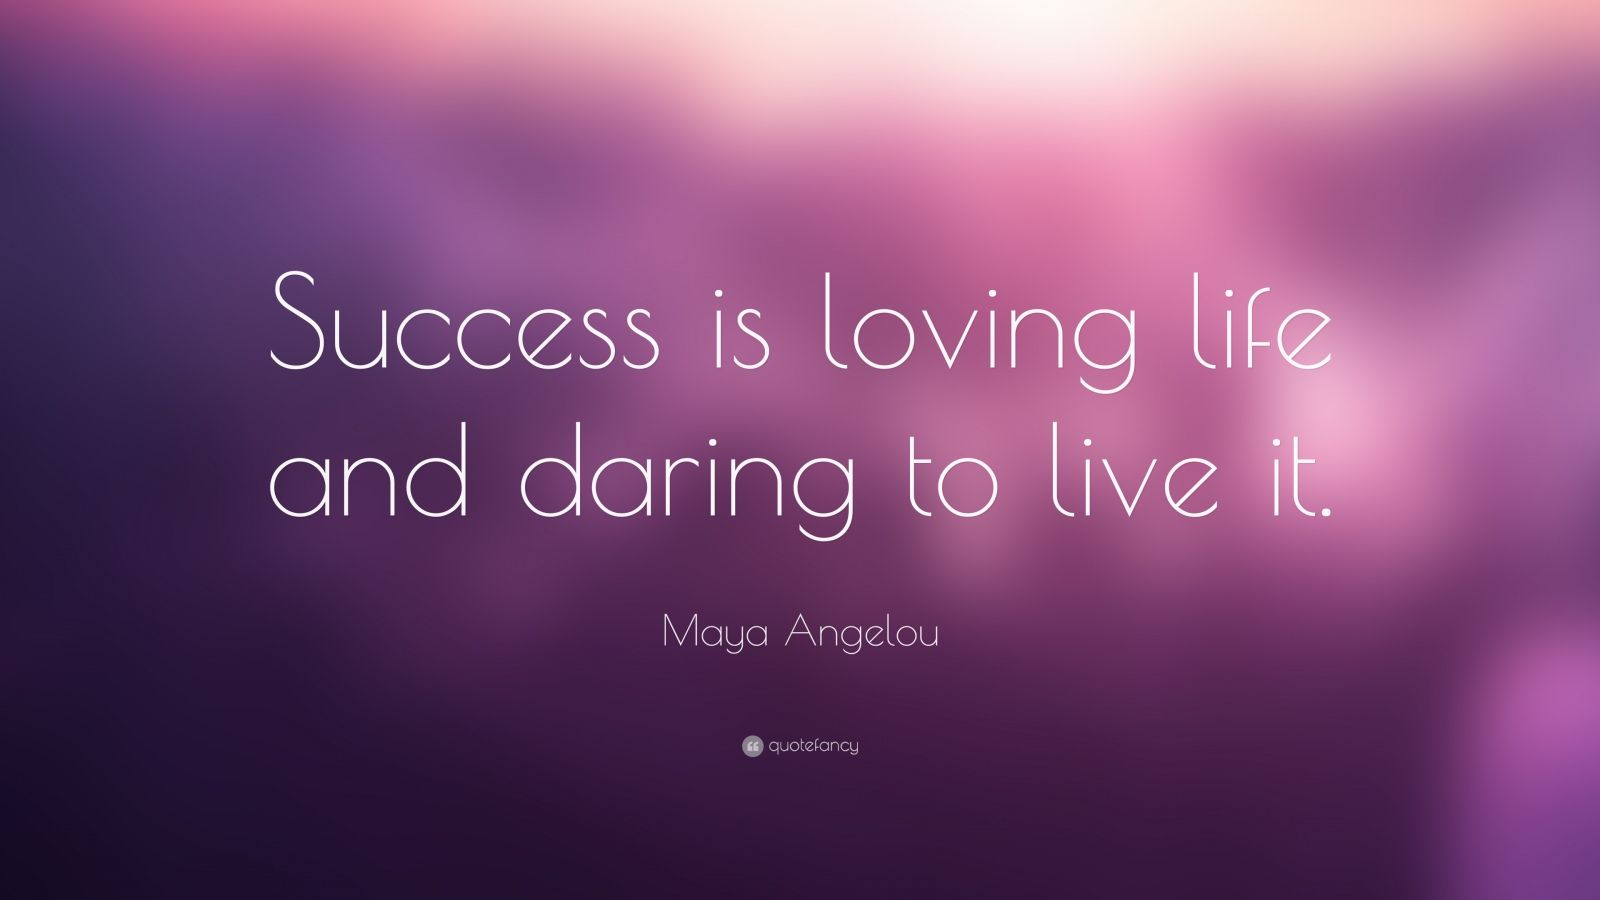 Love Quotes Maya Angelou Maya Angelou Quotes 100 Wallpapers  Quotefancy